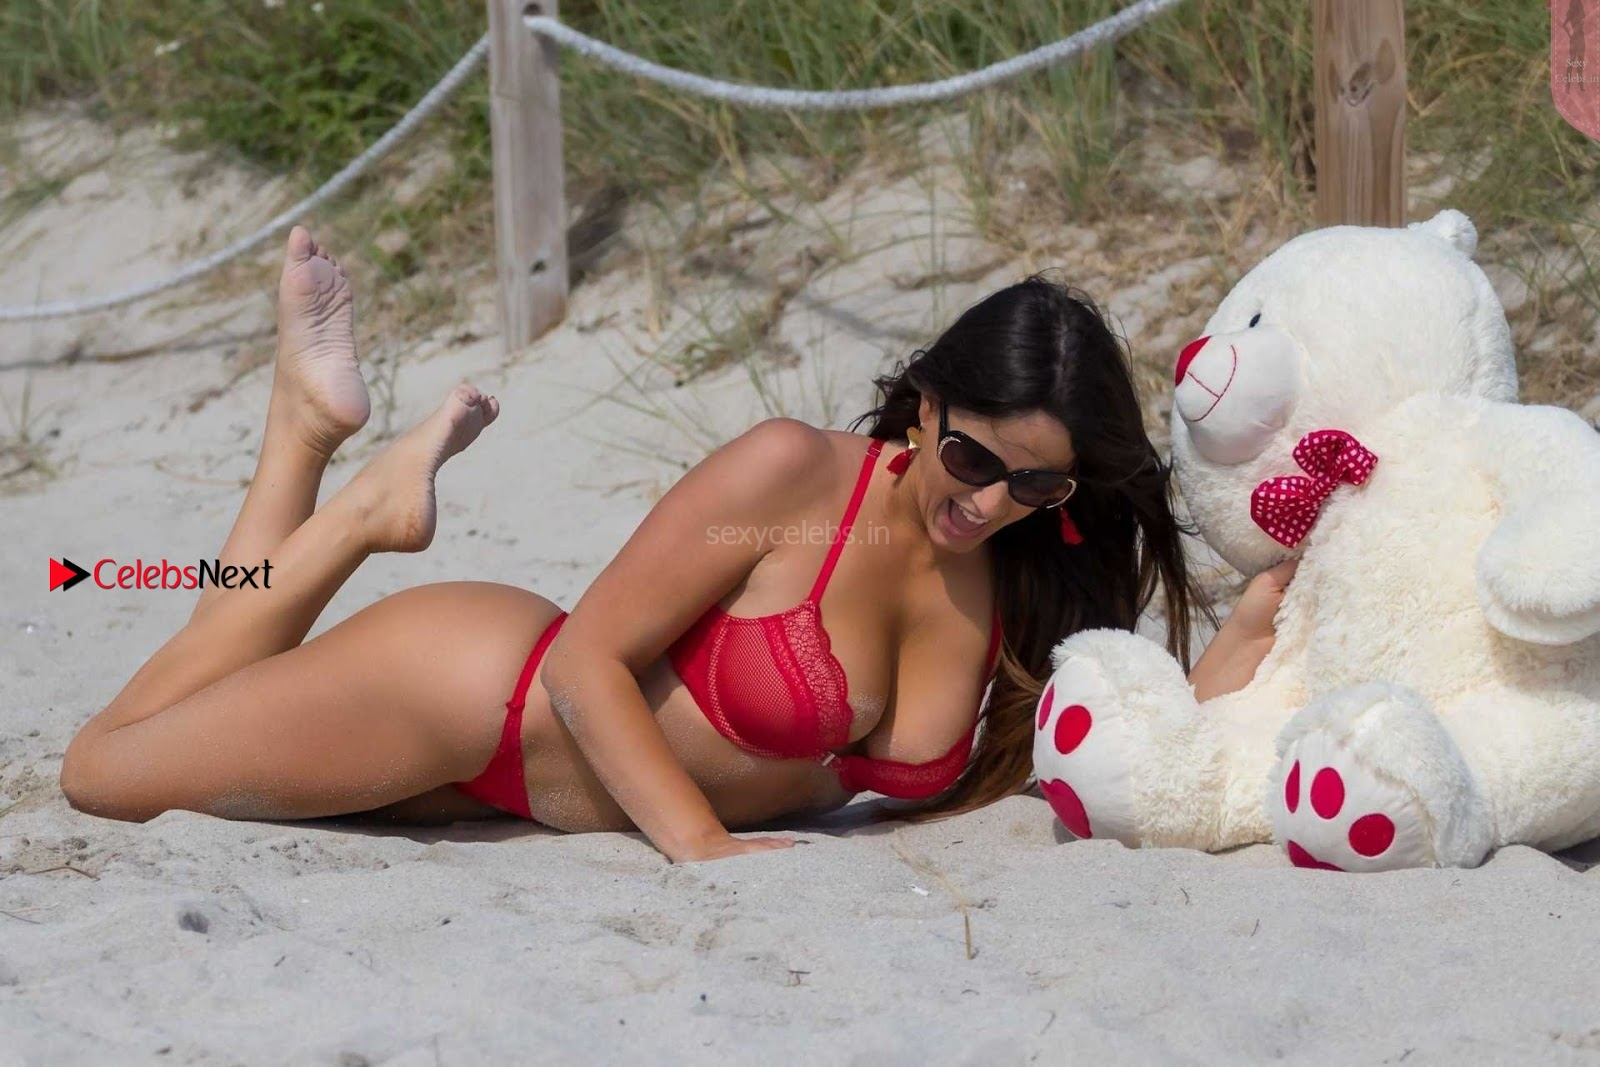 Claudia Romani wears sexy valentines day lingerie bra panties Feb 2018 ~ SexyCelebs.in Exclusive